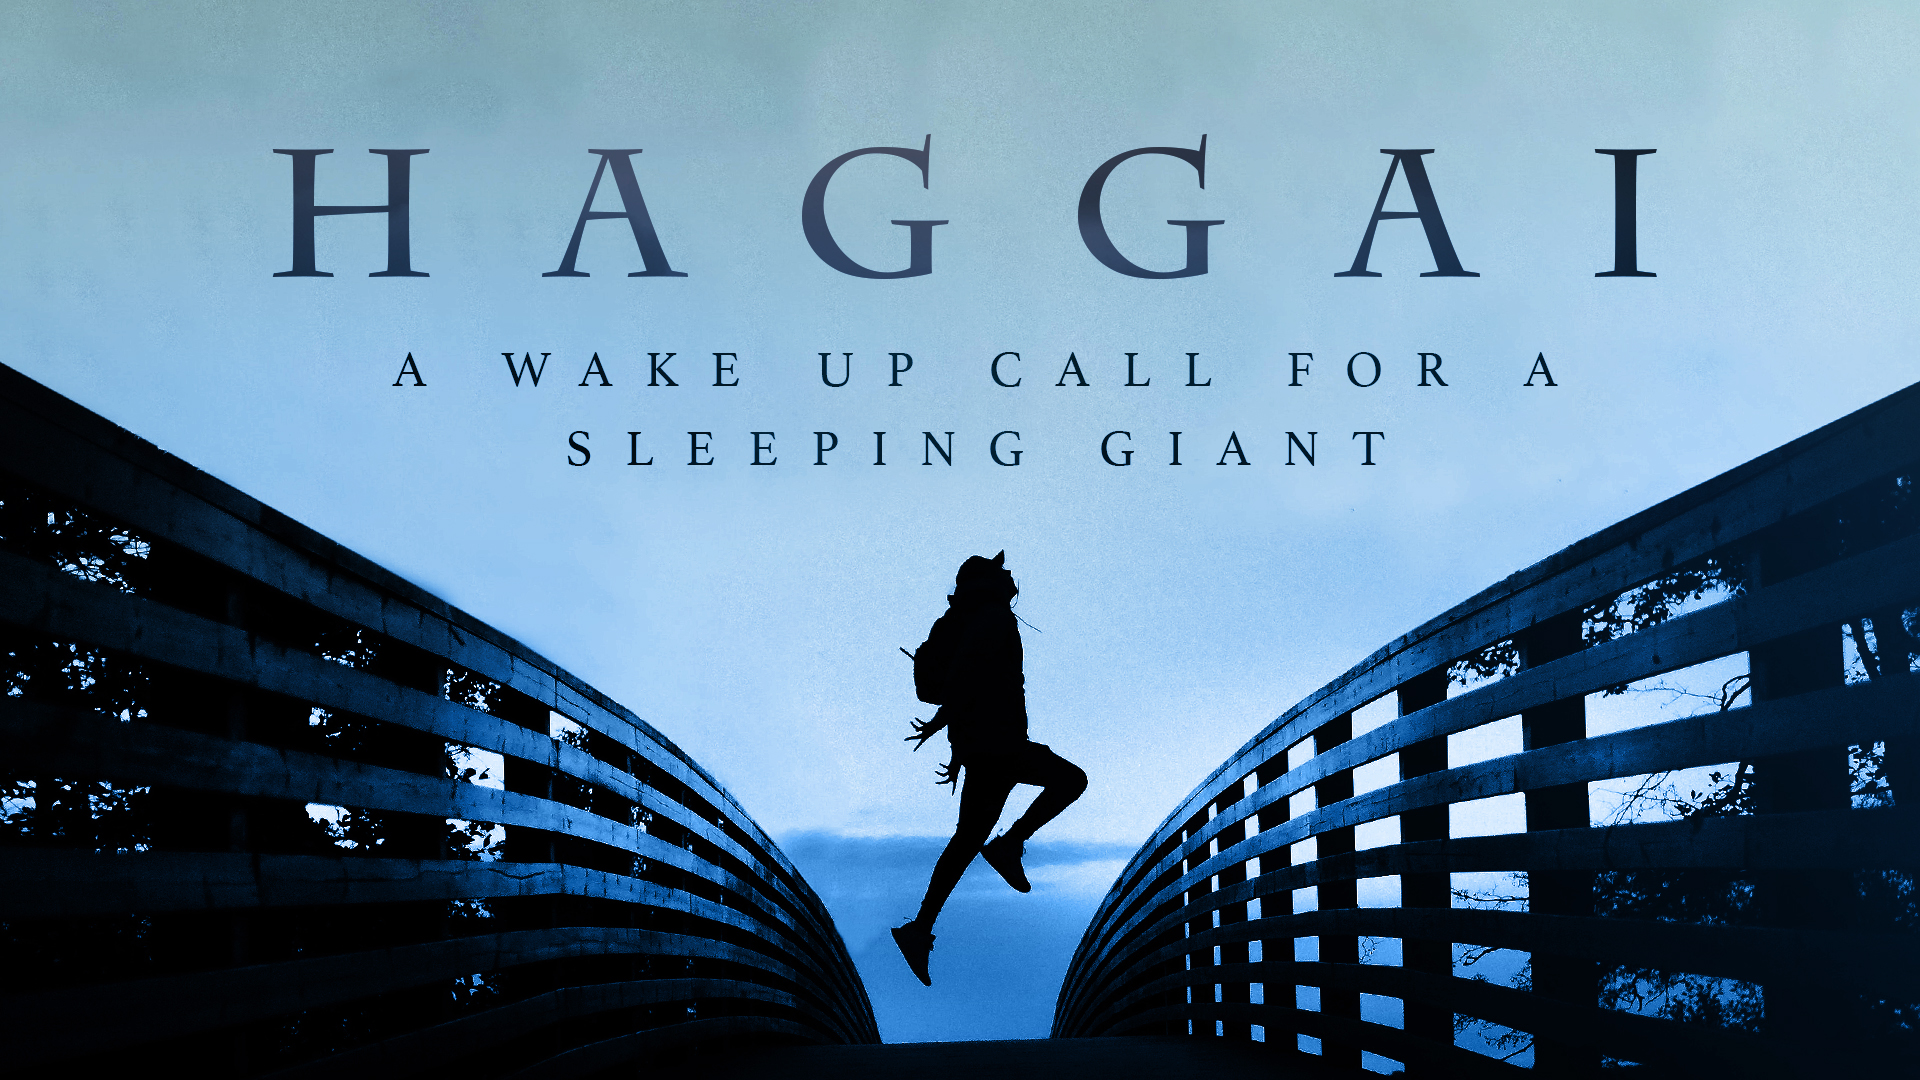 Haggai: A Wake Up Call for a Sleeping Giant